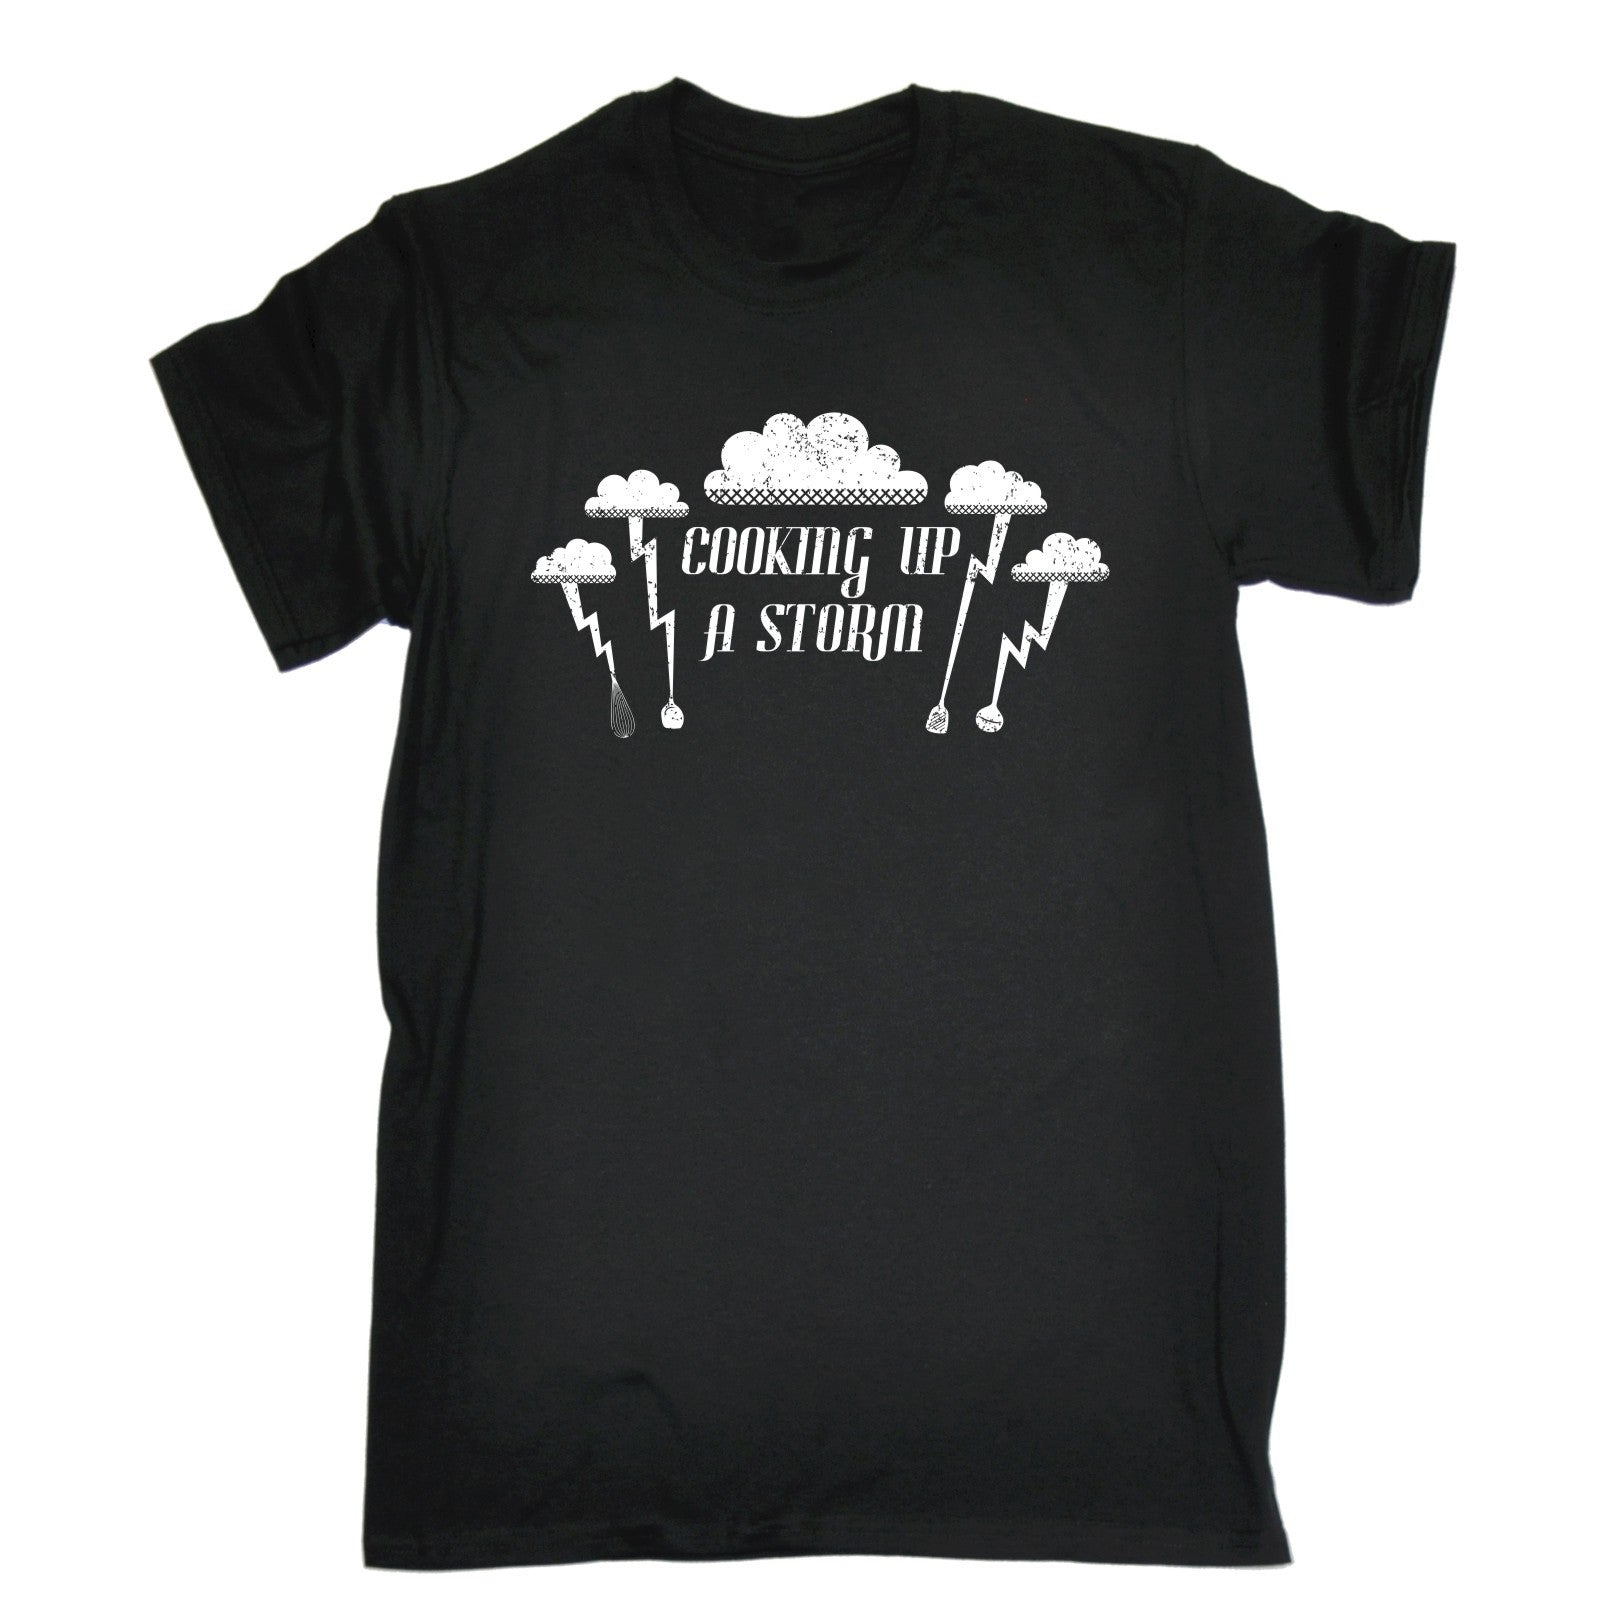 ce428b5e7 123t Men's Cooking Up A Storm Lightning Cloud Design Funny T-Shirt